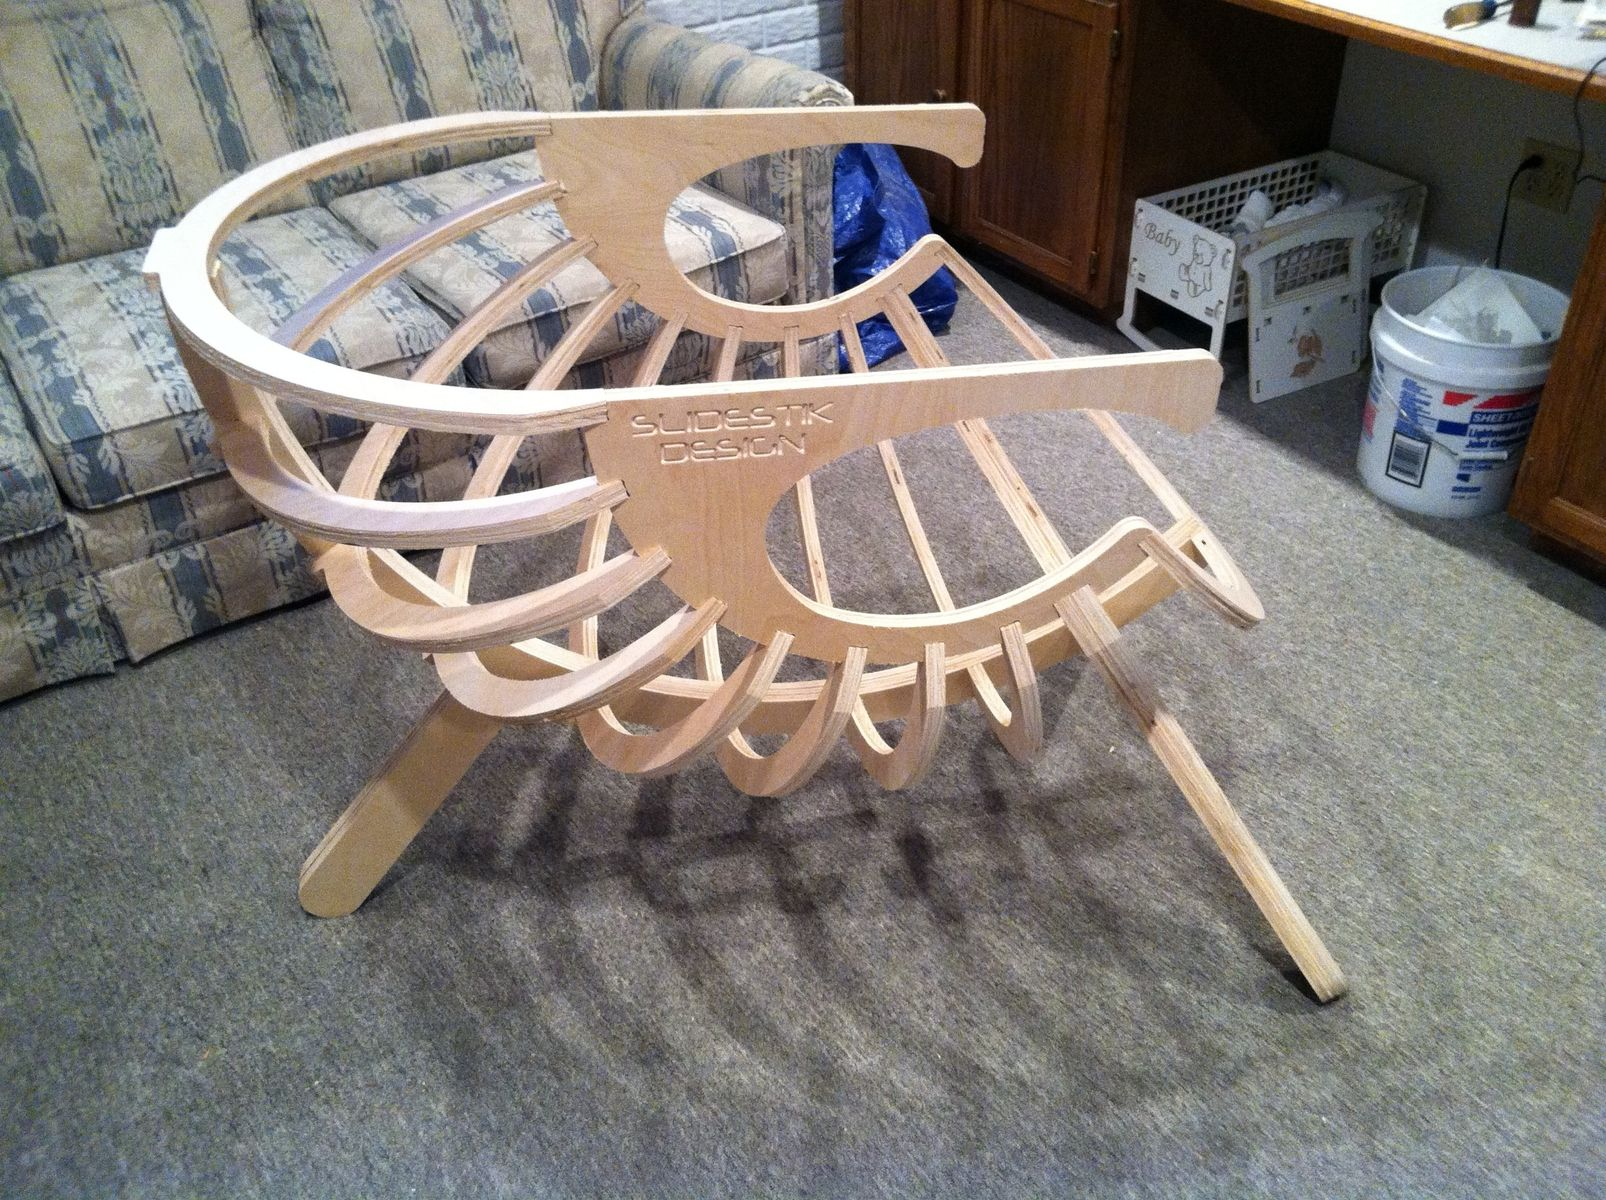 Groovy Custom Made Bowl Chair By Slidestik Design And Manufacturing Ibusinesslaw Wood Chair Design Ideas Ibusinesslaworg